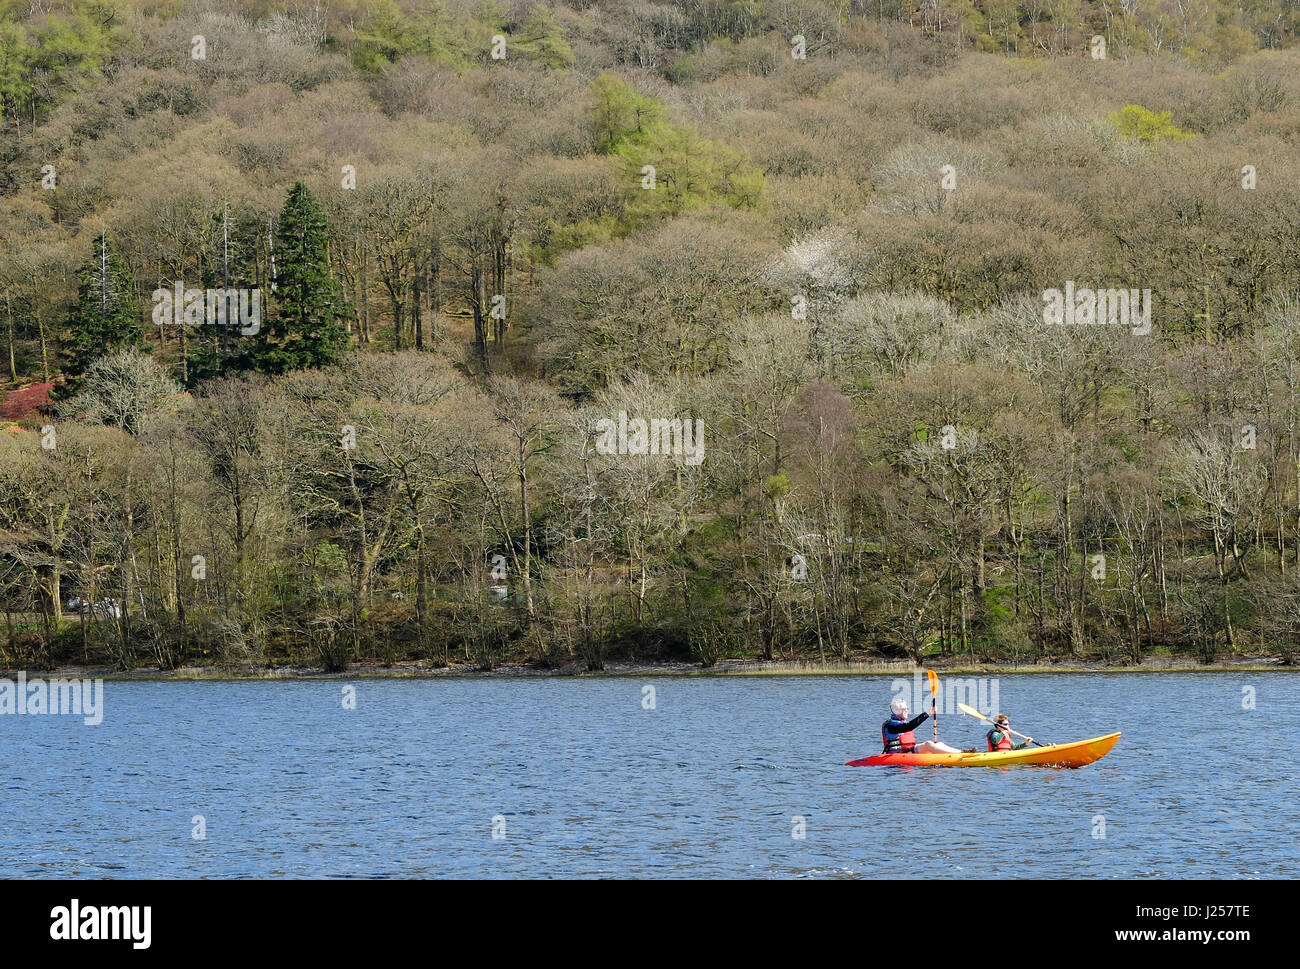 Father and son canoeing on Lake Coniston, Cumbria - Stock Image